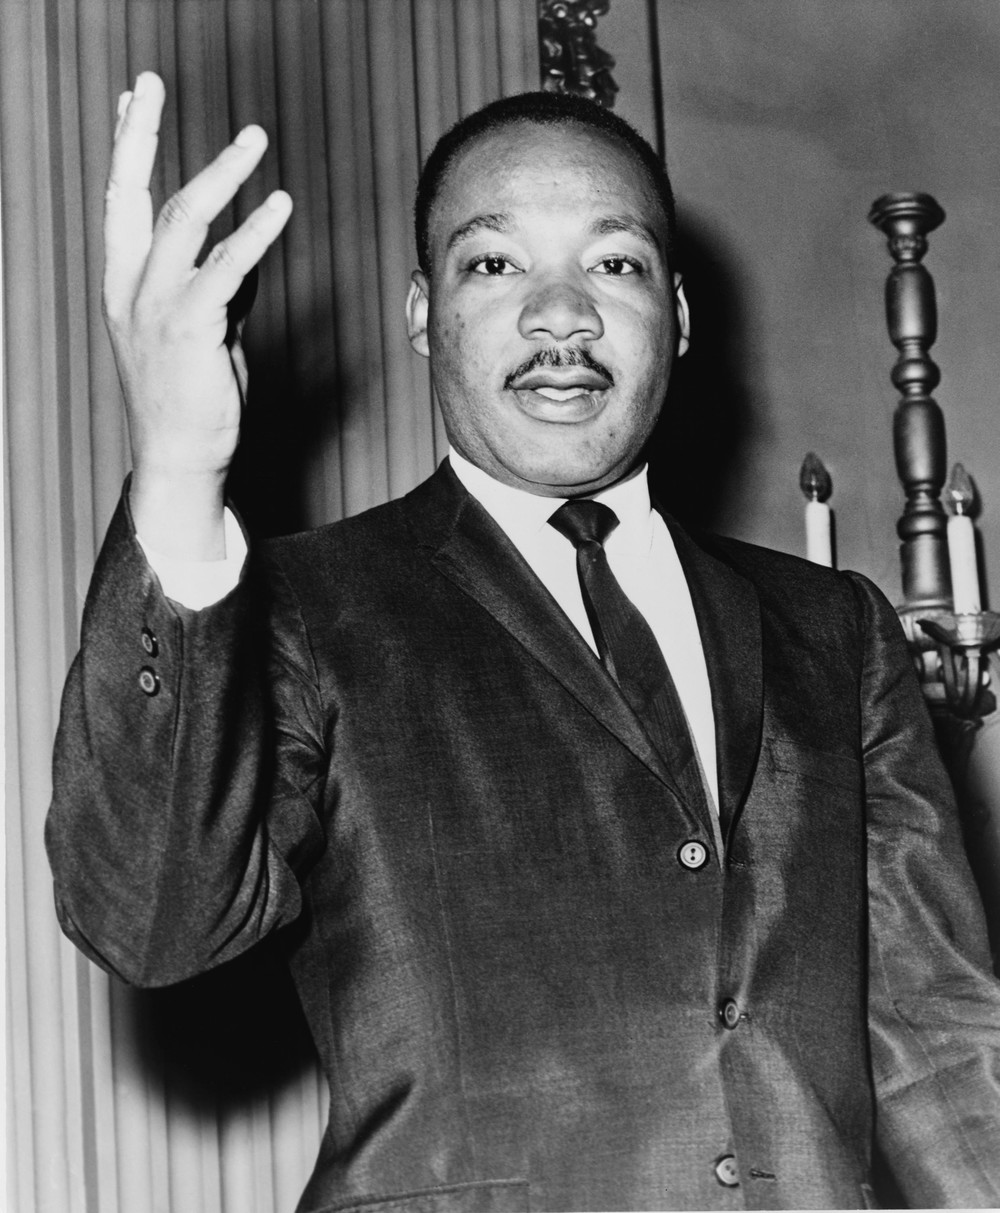 The  Rev. Dr. Martin Luther King, Jr. , on Dec. 31, 1963.  Source : Dick DeMarsico, World Telegram/NYWTS/Library of Congress (Public Domain)